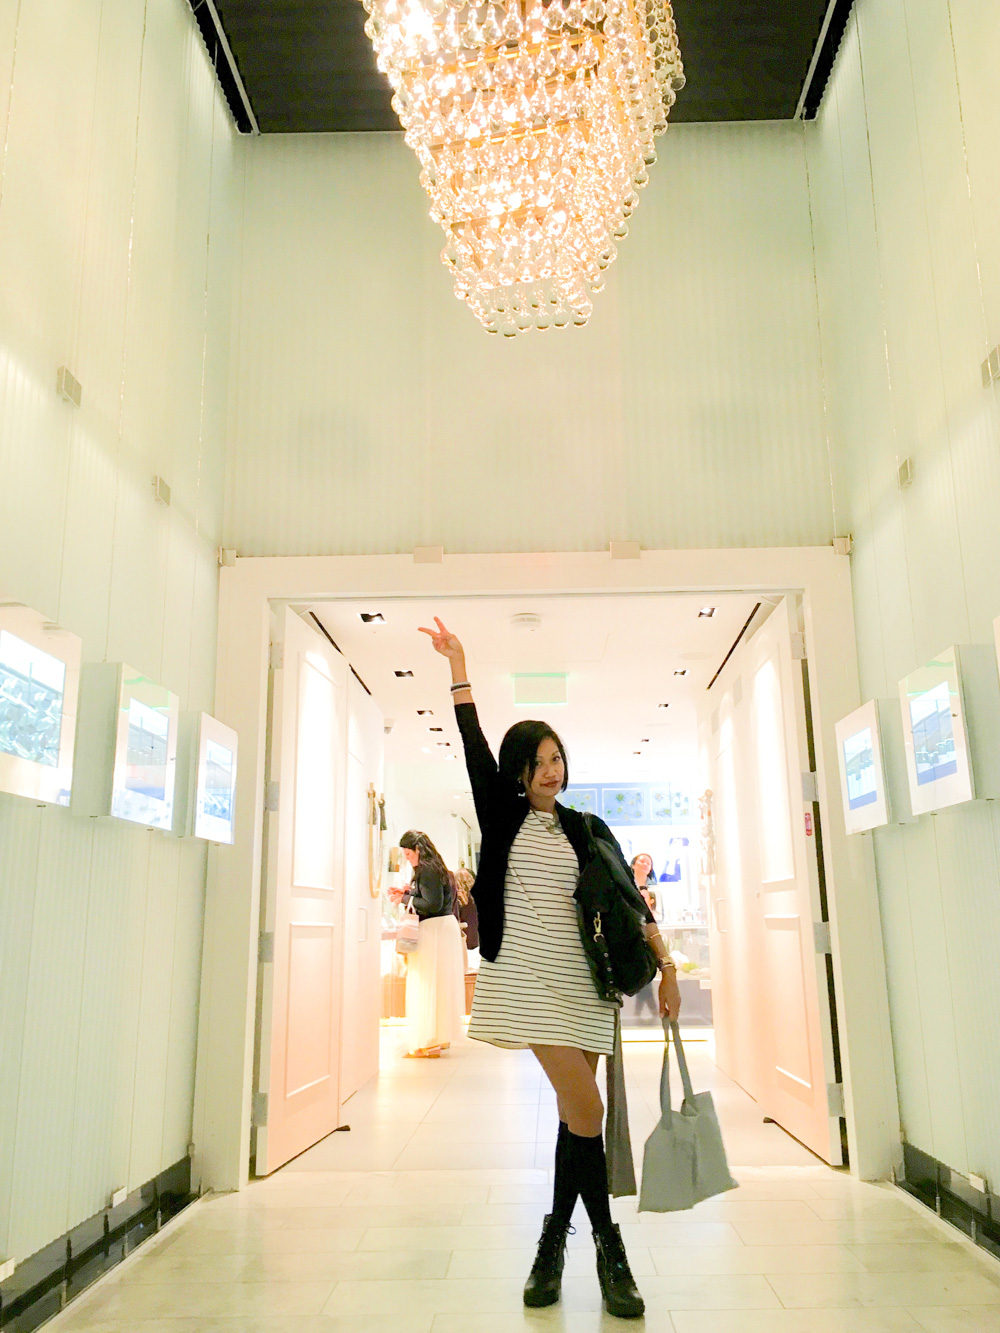 thereafterish California Diaries 06 lost vlog thumbnail  Asian woman flashing peace sign in bright hallway